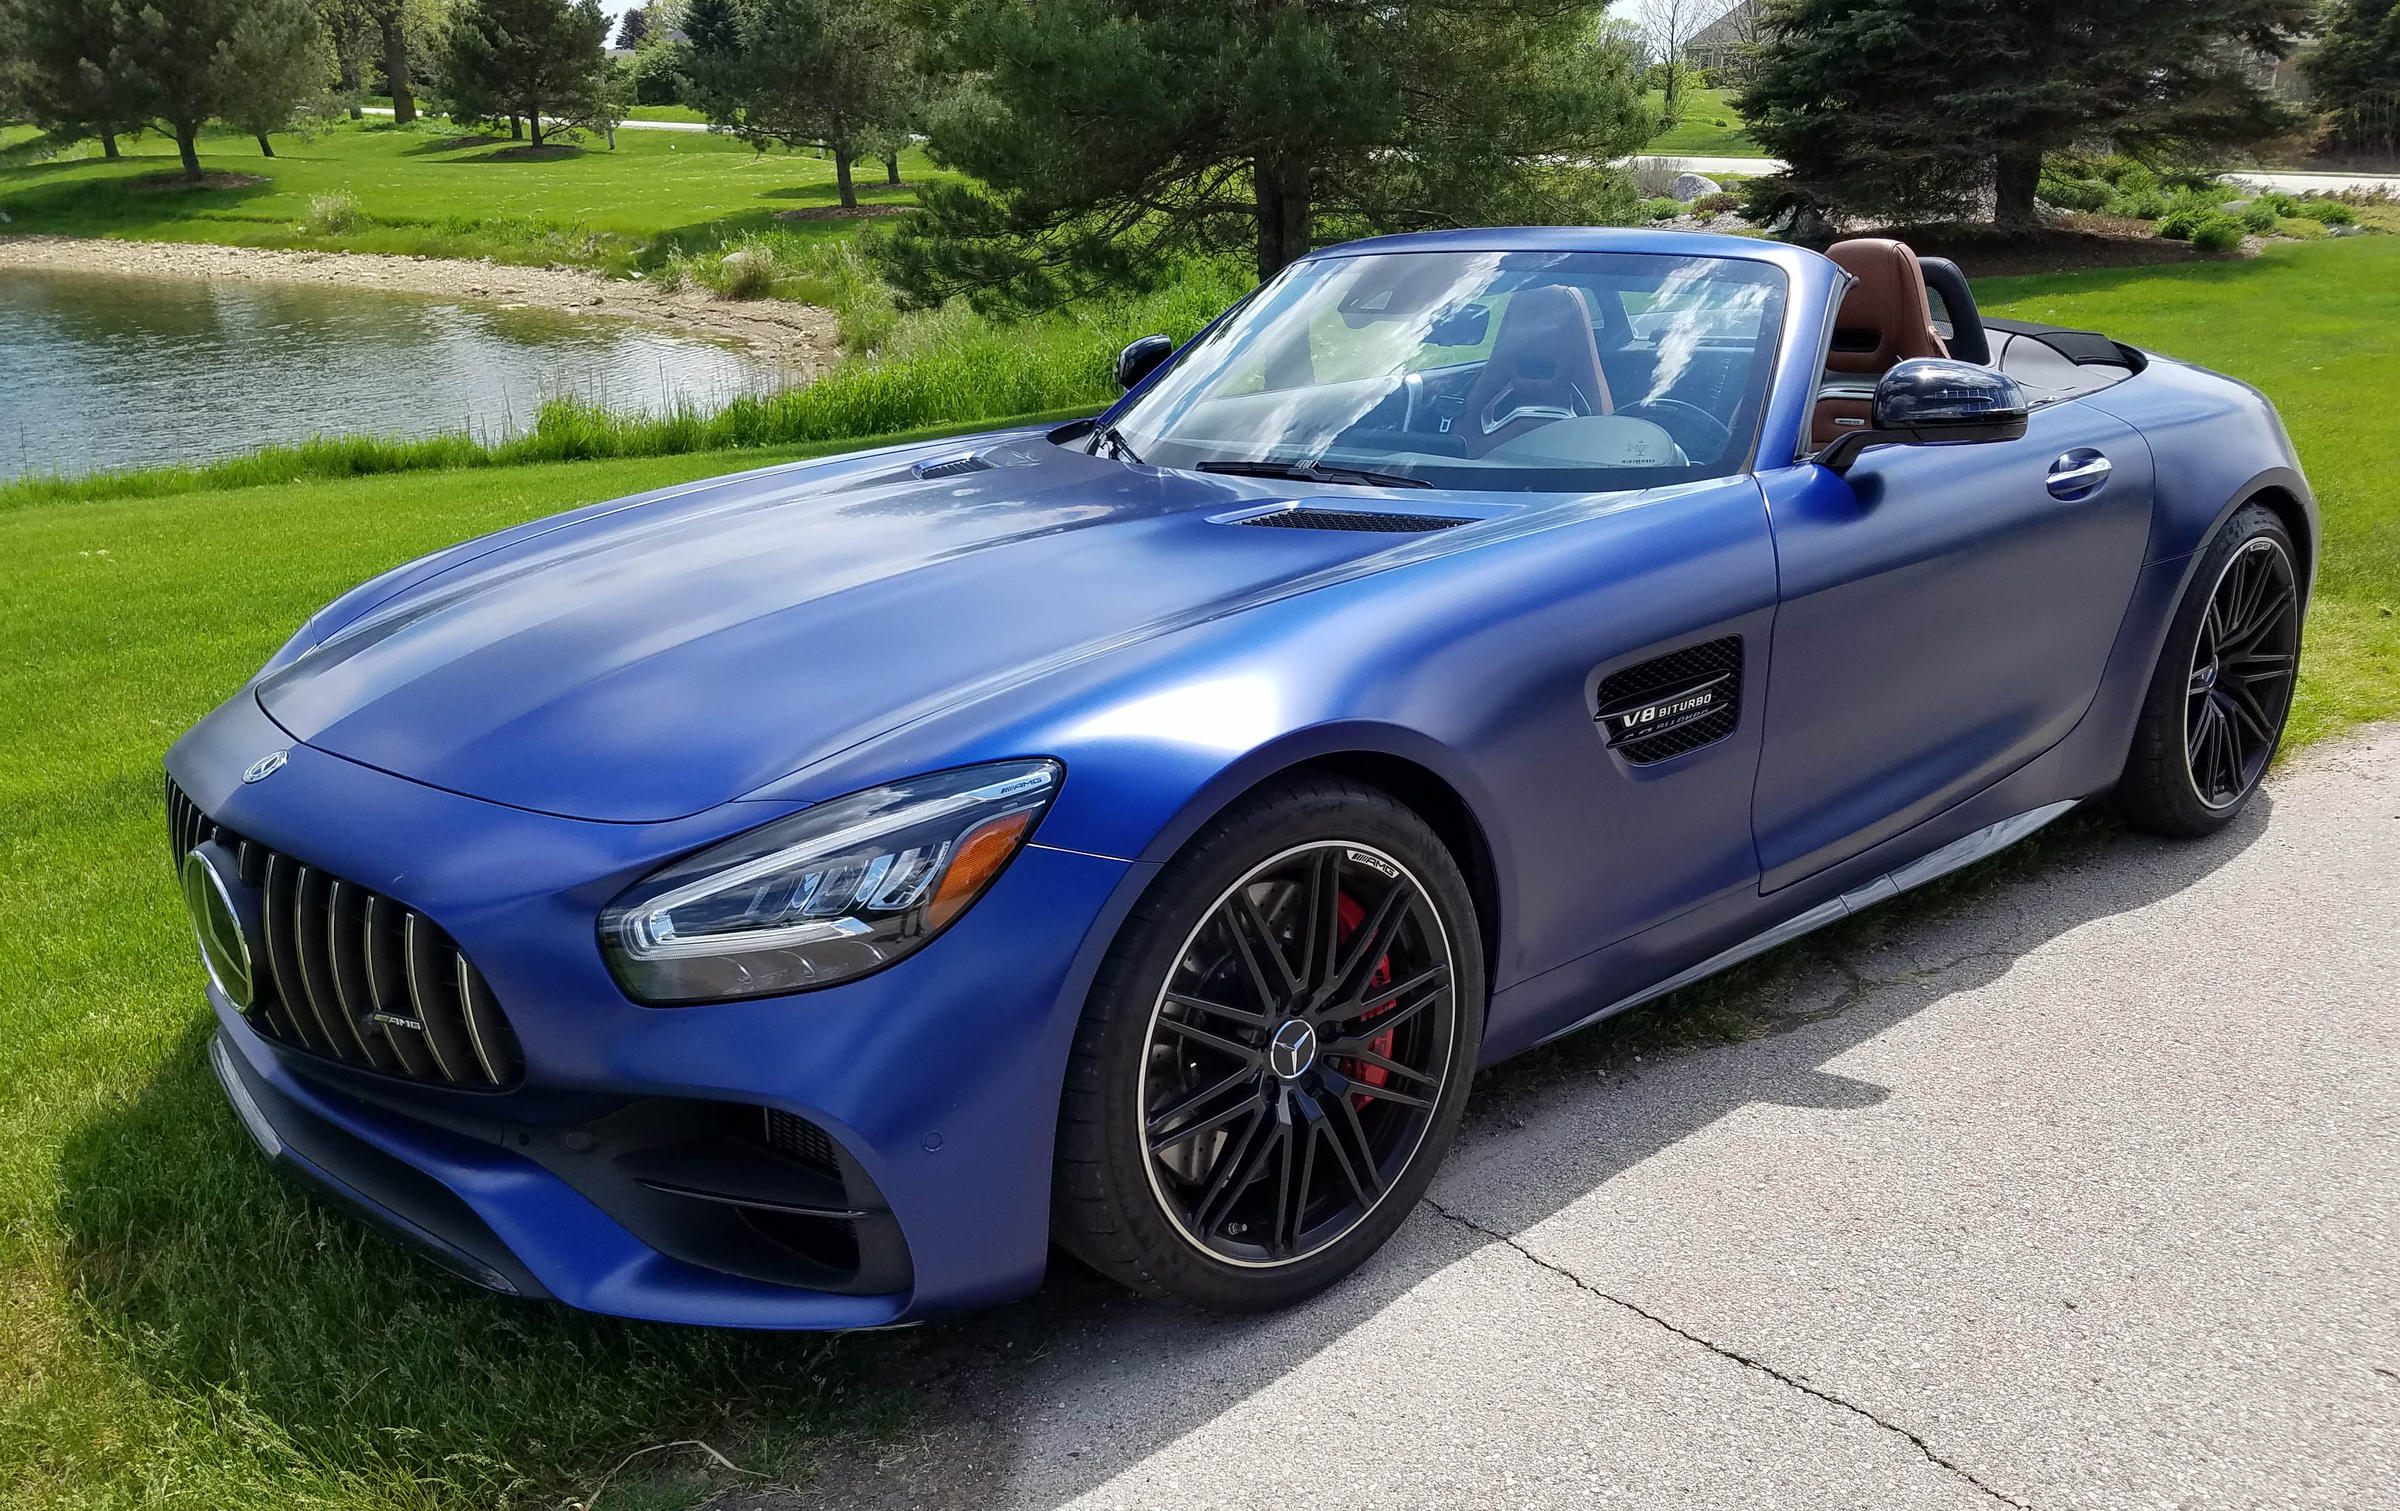 2020 Mercedes Benz Amg Gt C Roadster Review Wuwm